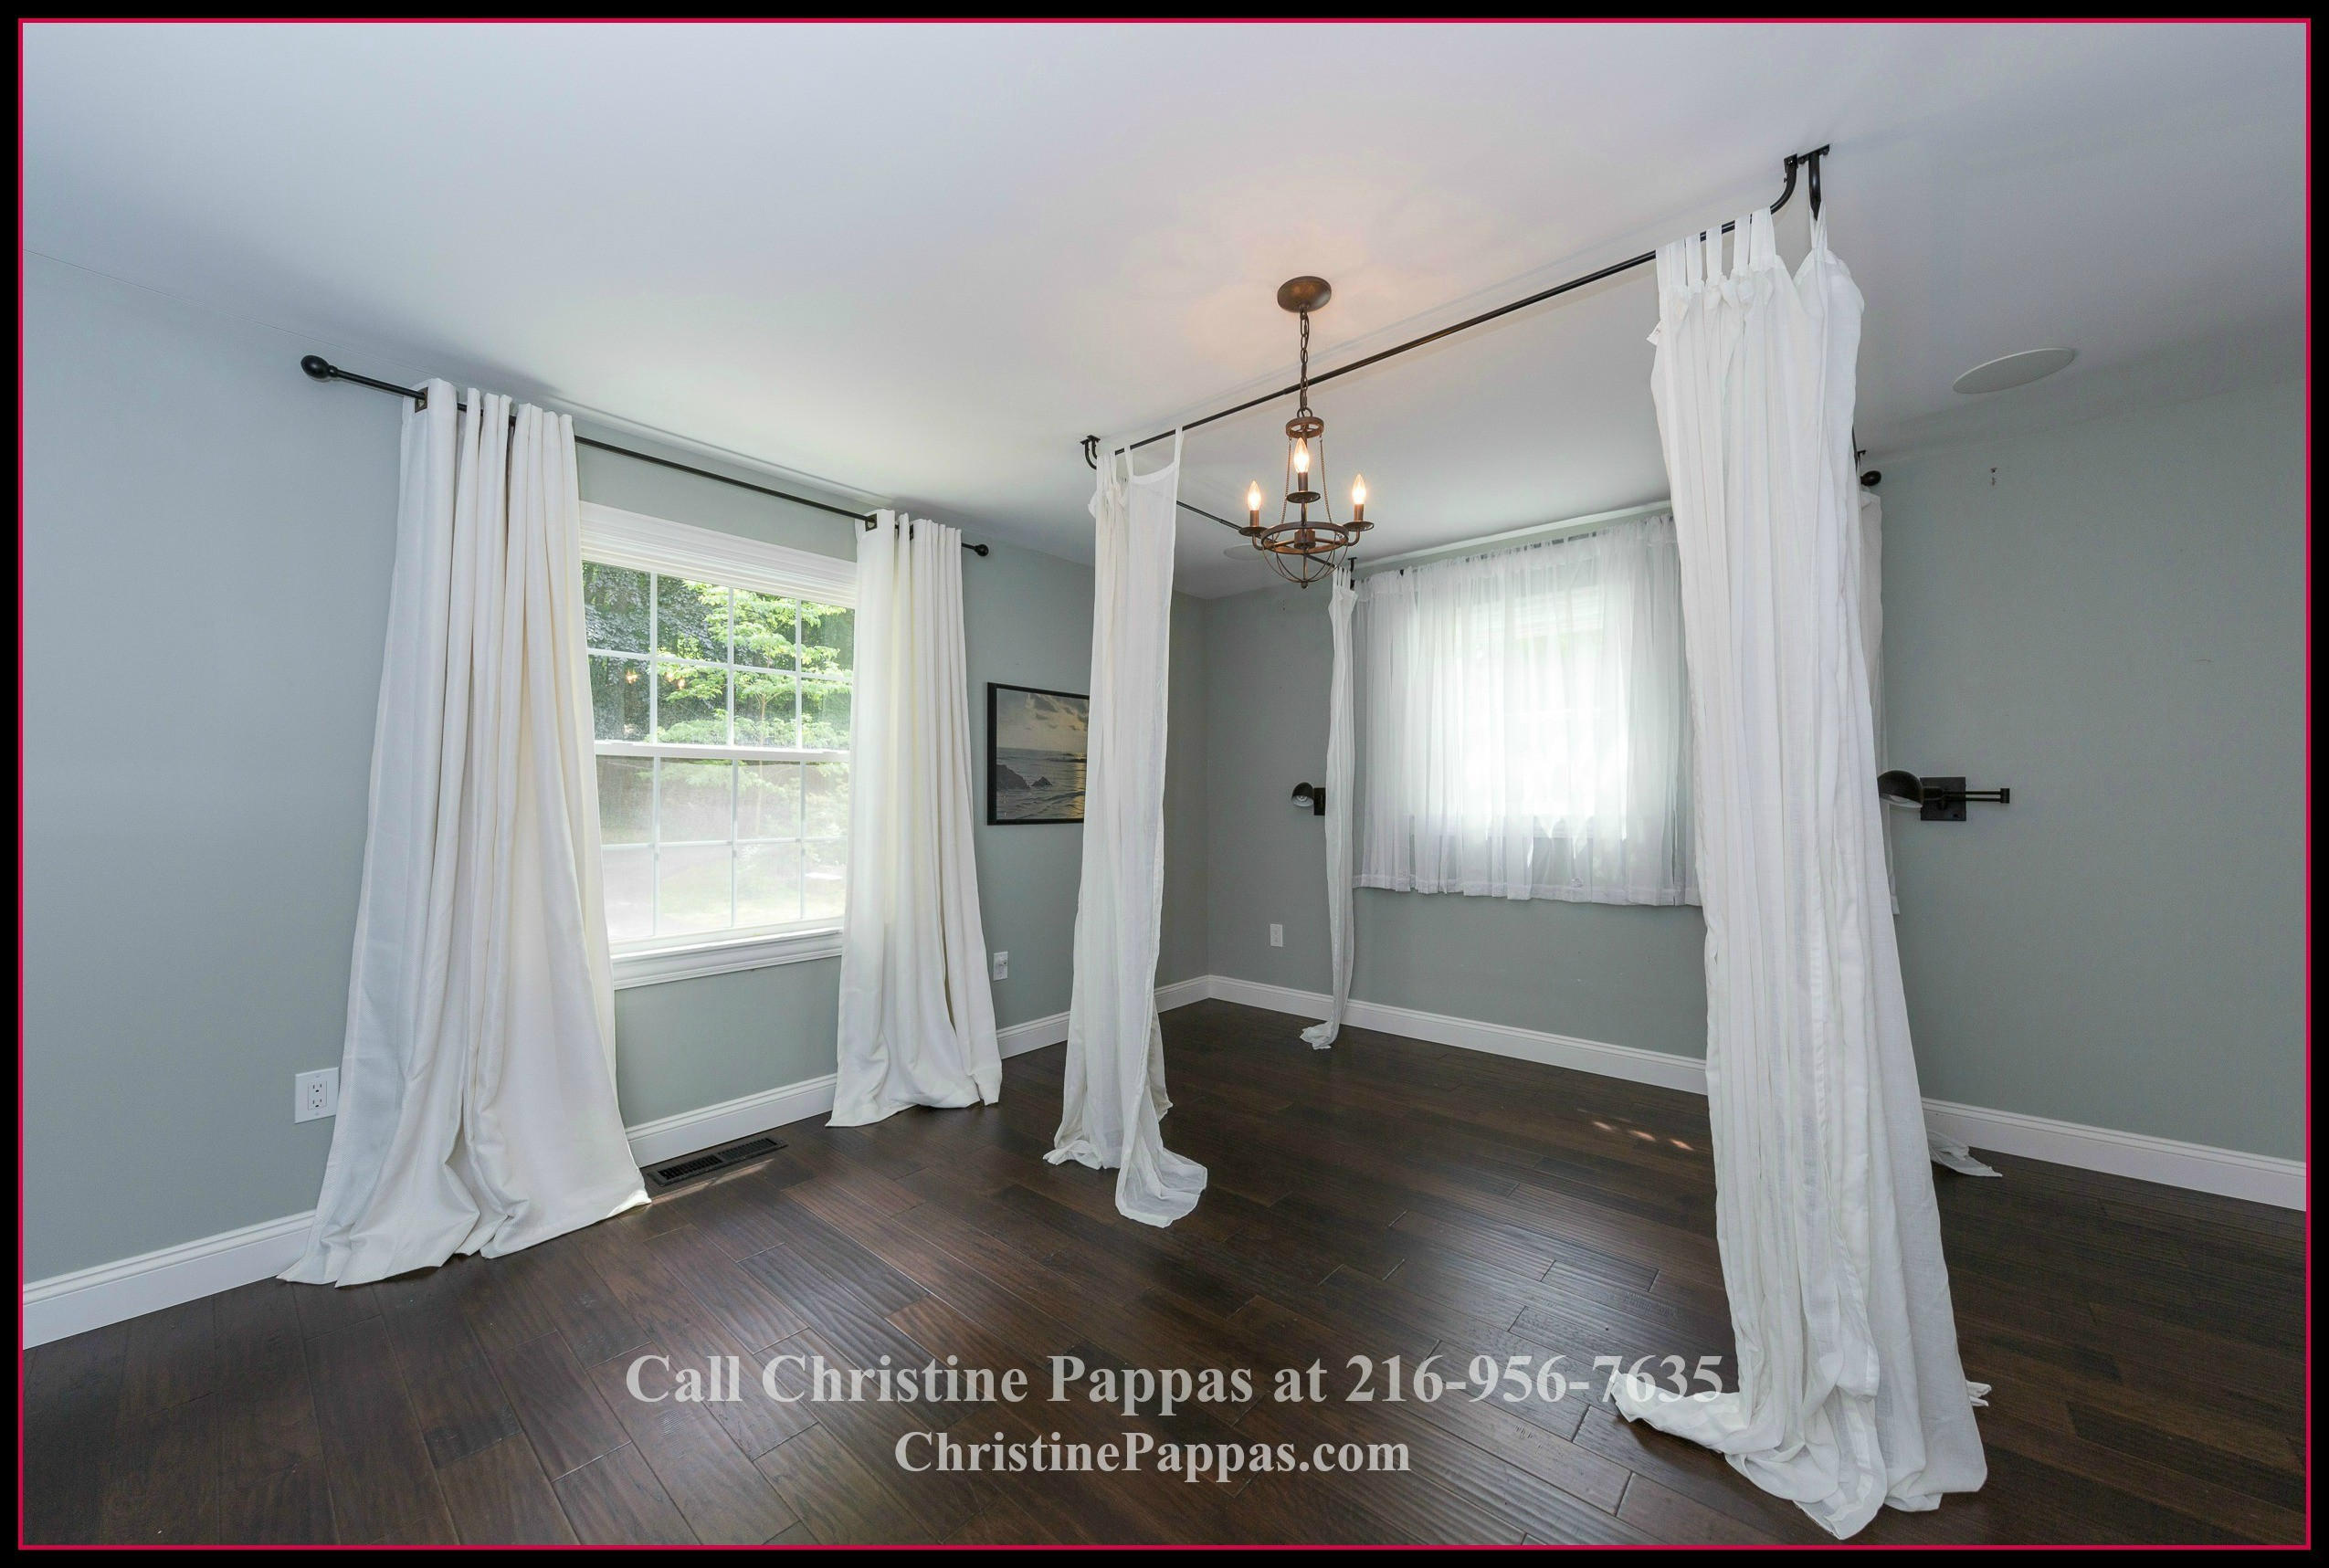 Enjoy memorable family time in the expansive master bedroom of this beautiful home for sale in Gates Mills OH.